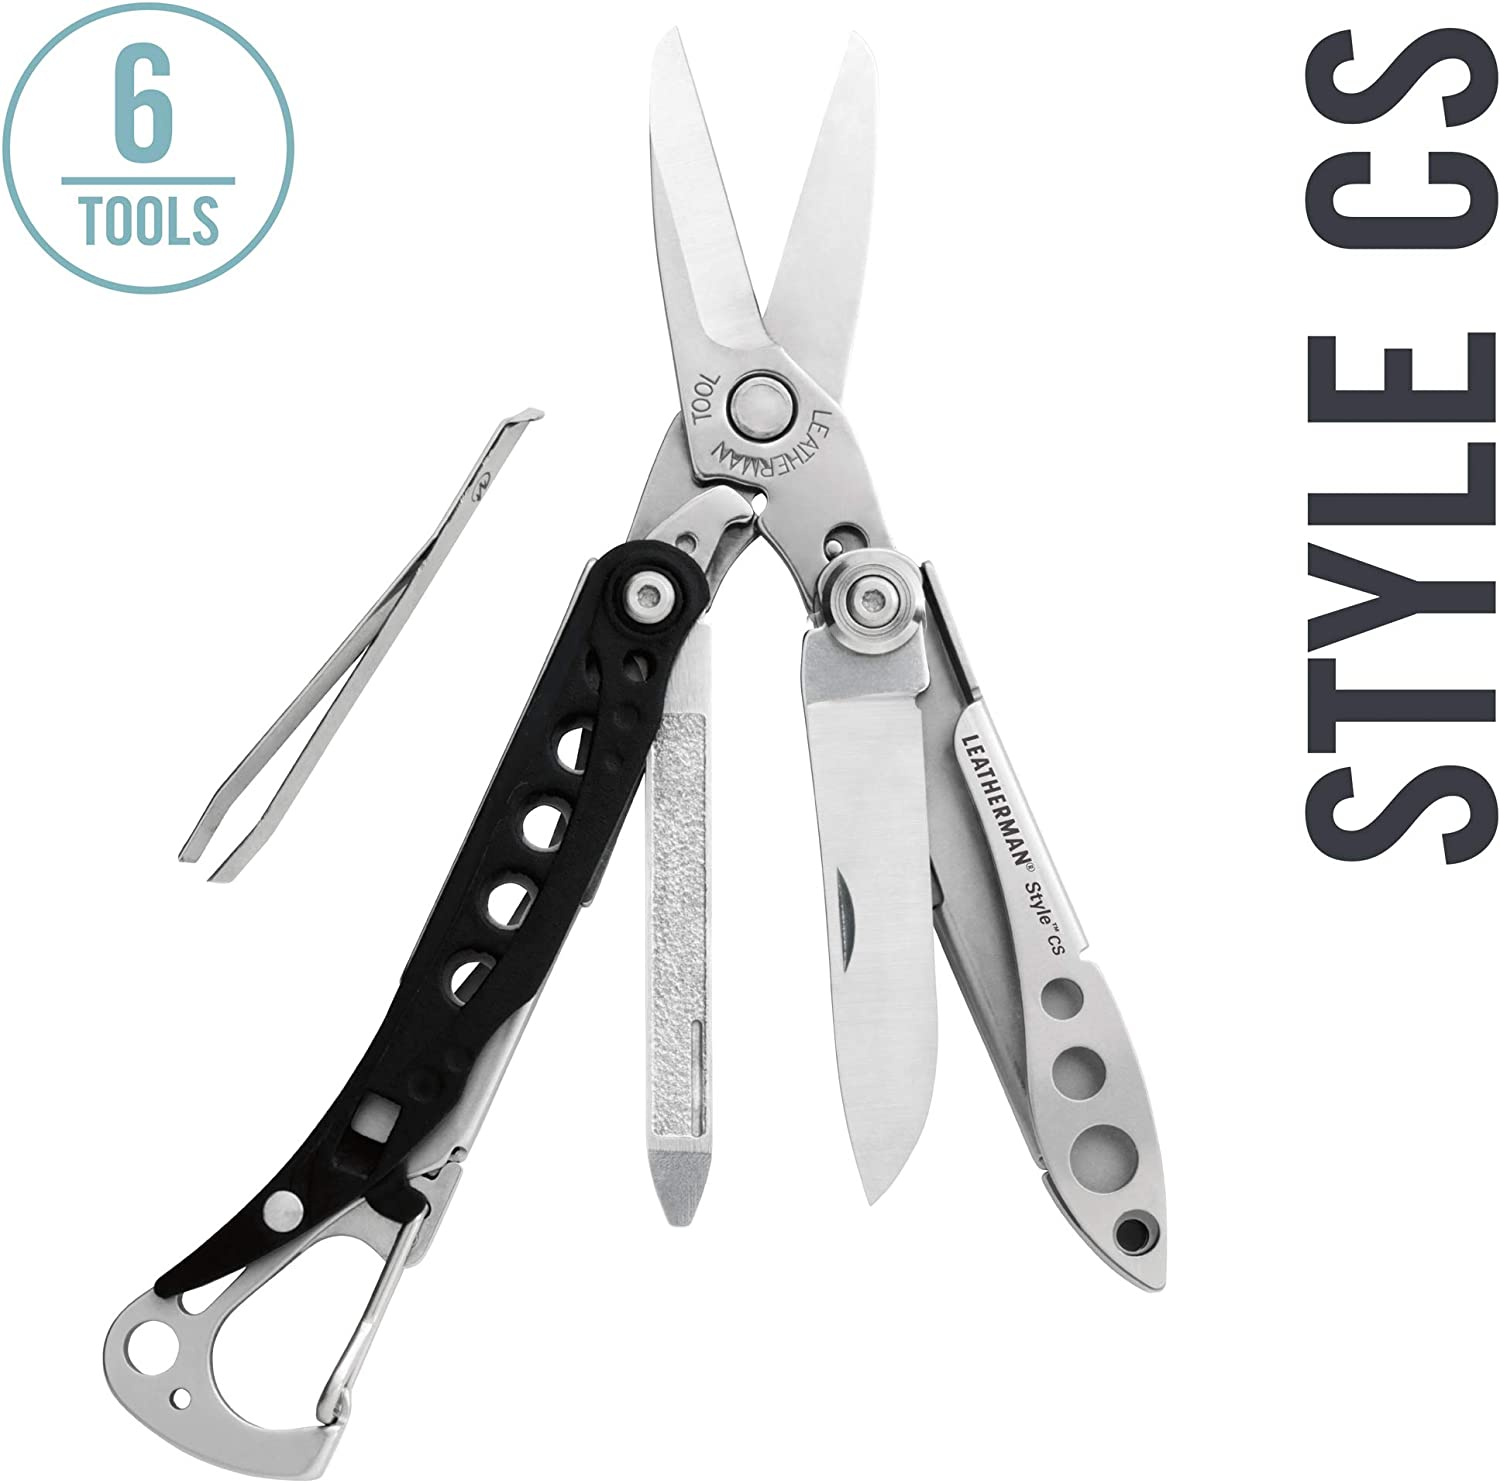 5. Leatherman Style CS 6-in-1 Keychain Multitool